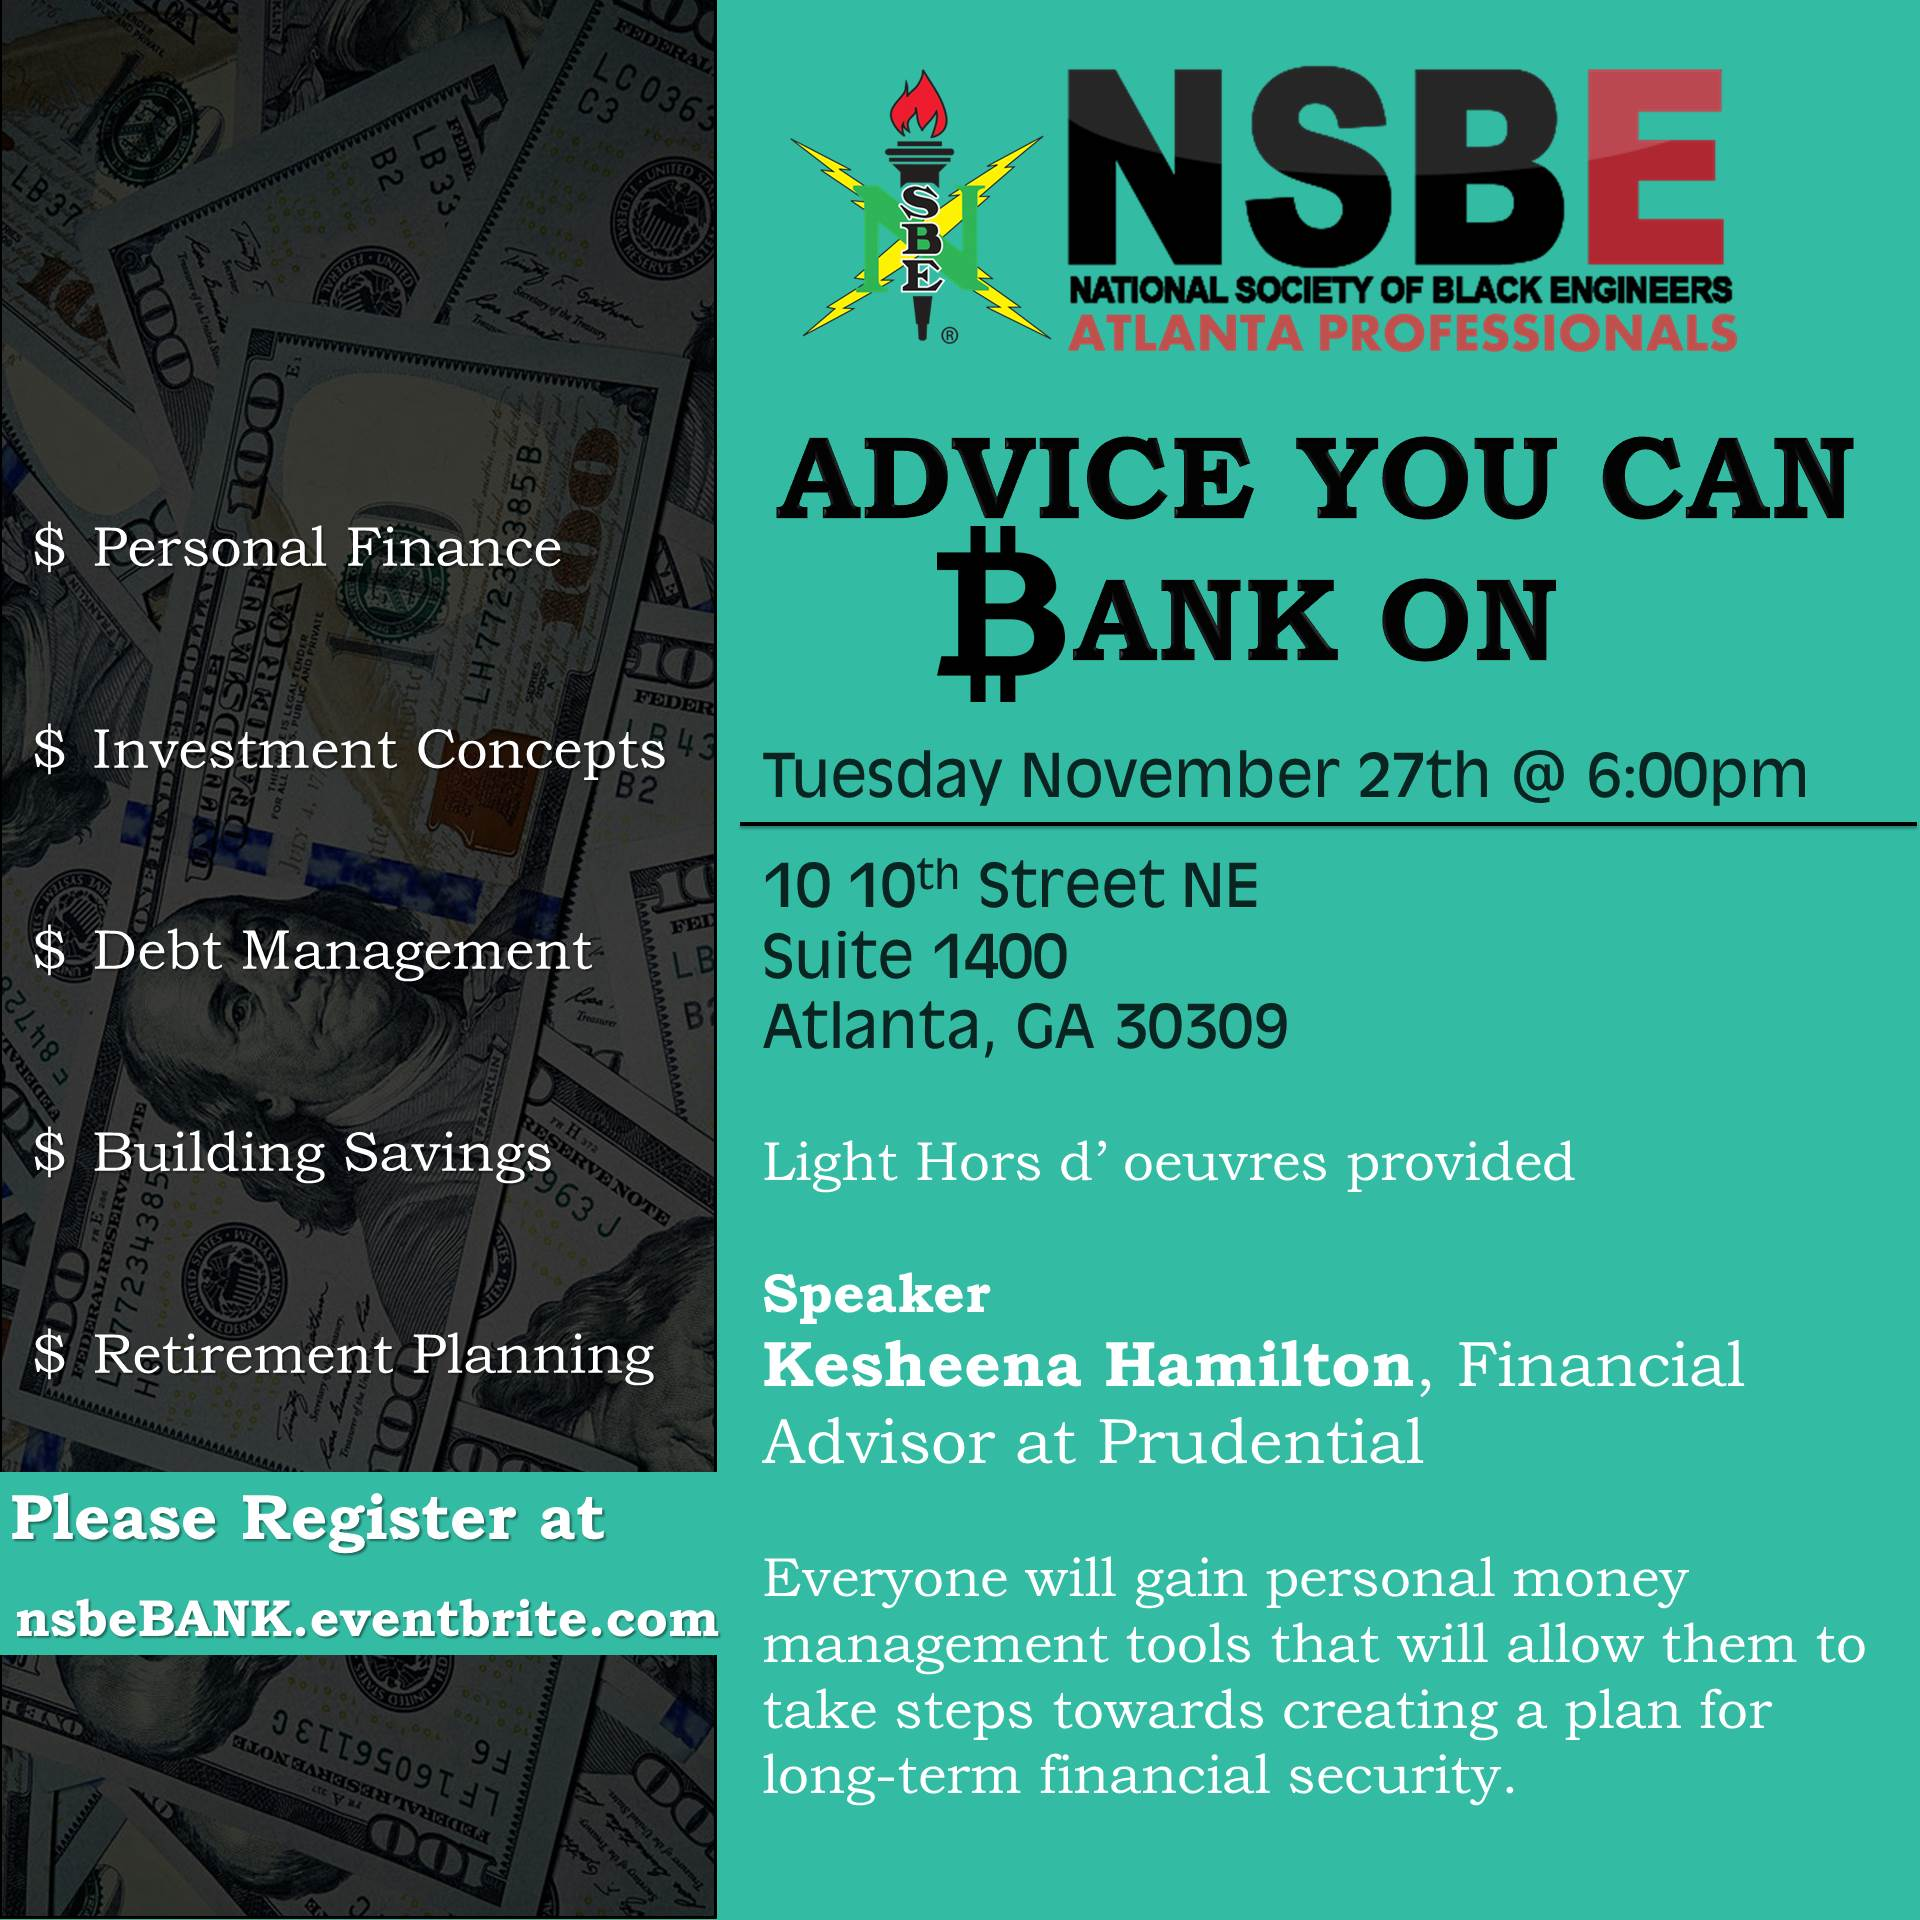 http://nsbeatlantaprofessionals.org/wp-content/uploads/2018/11/advice-you-can-bank-on.jpg